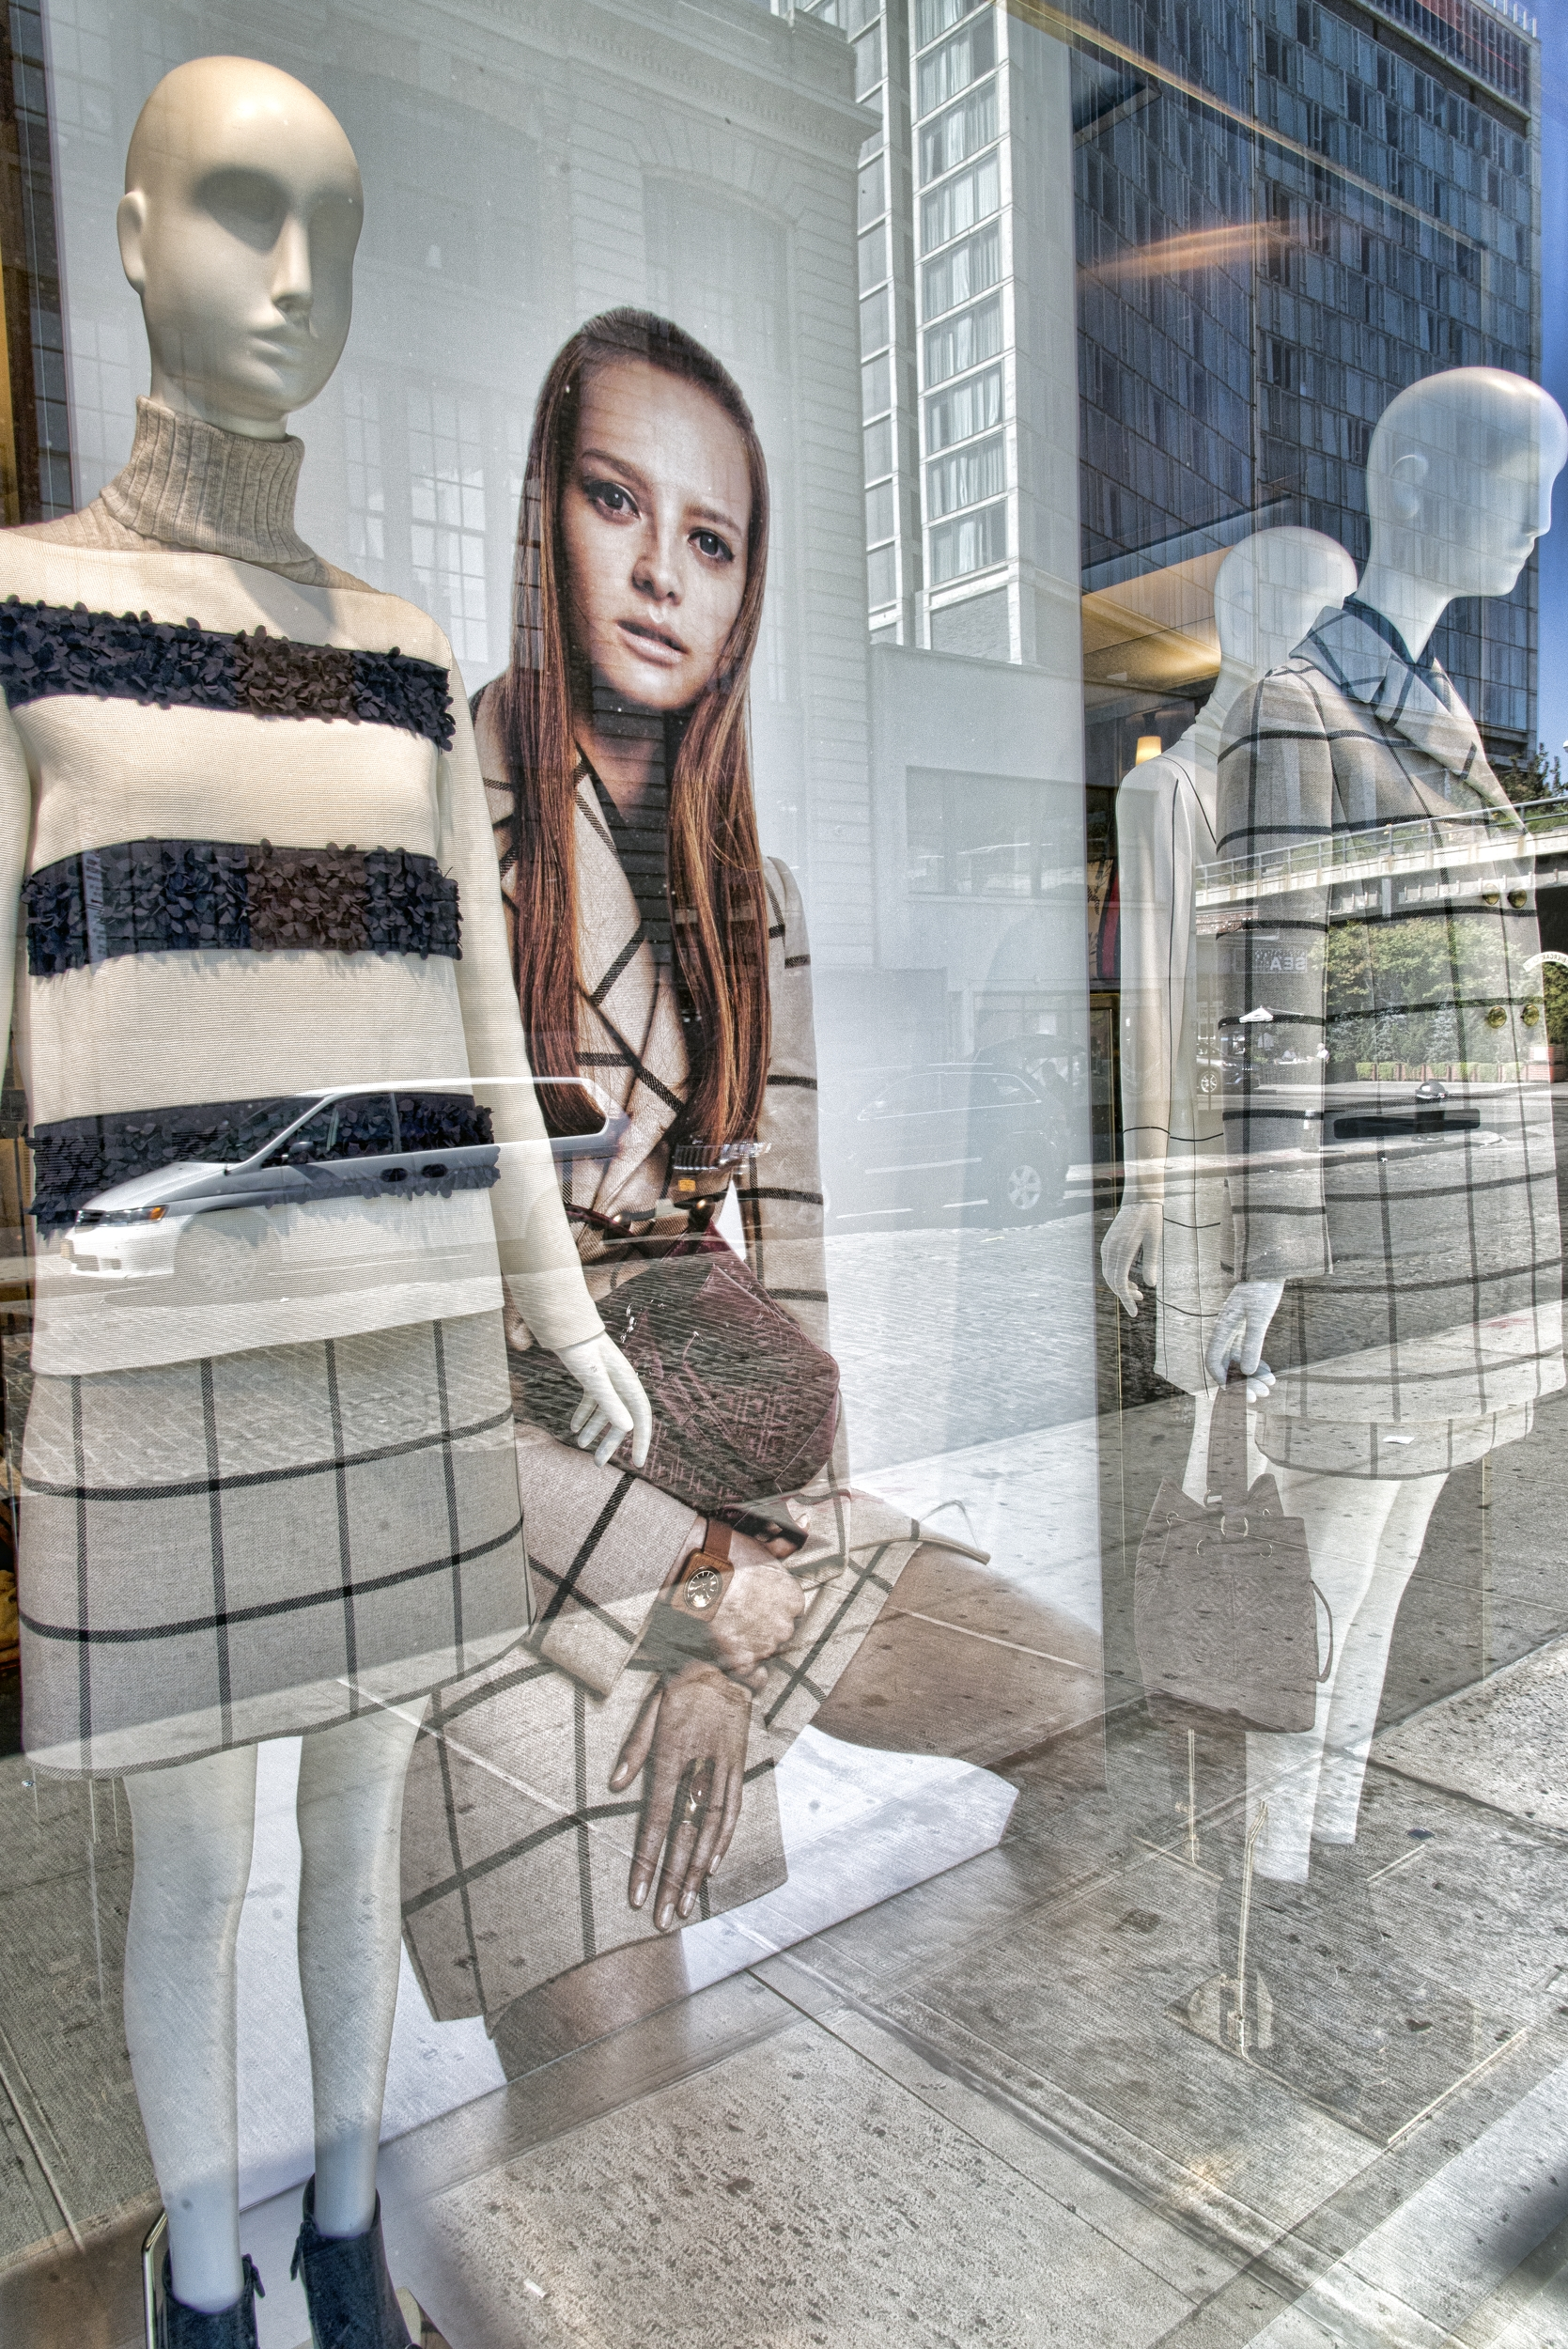 Girl with mannequins